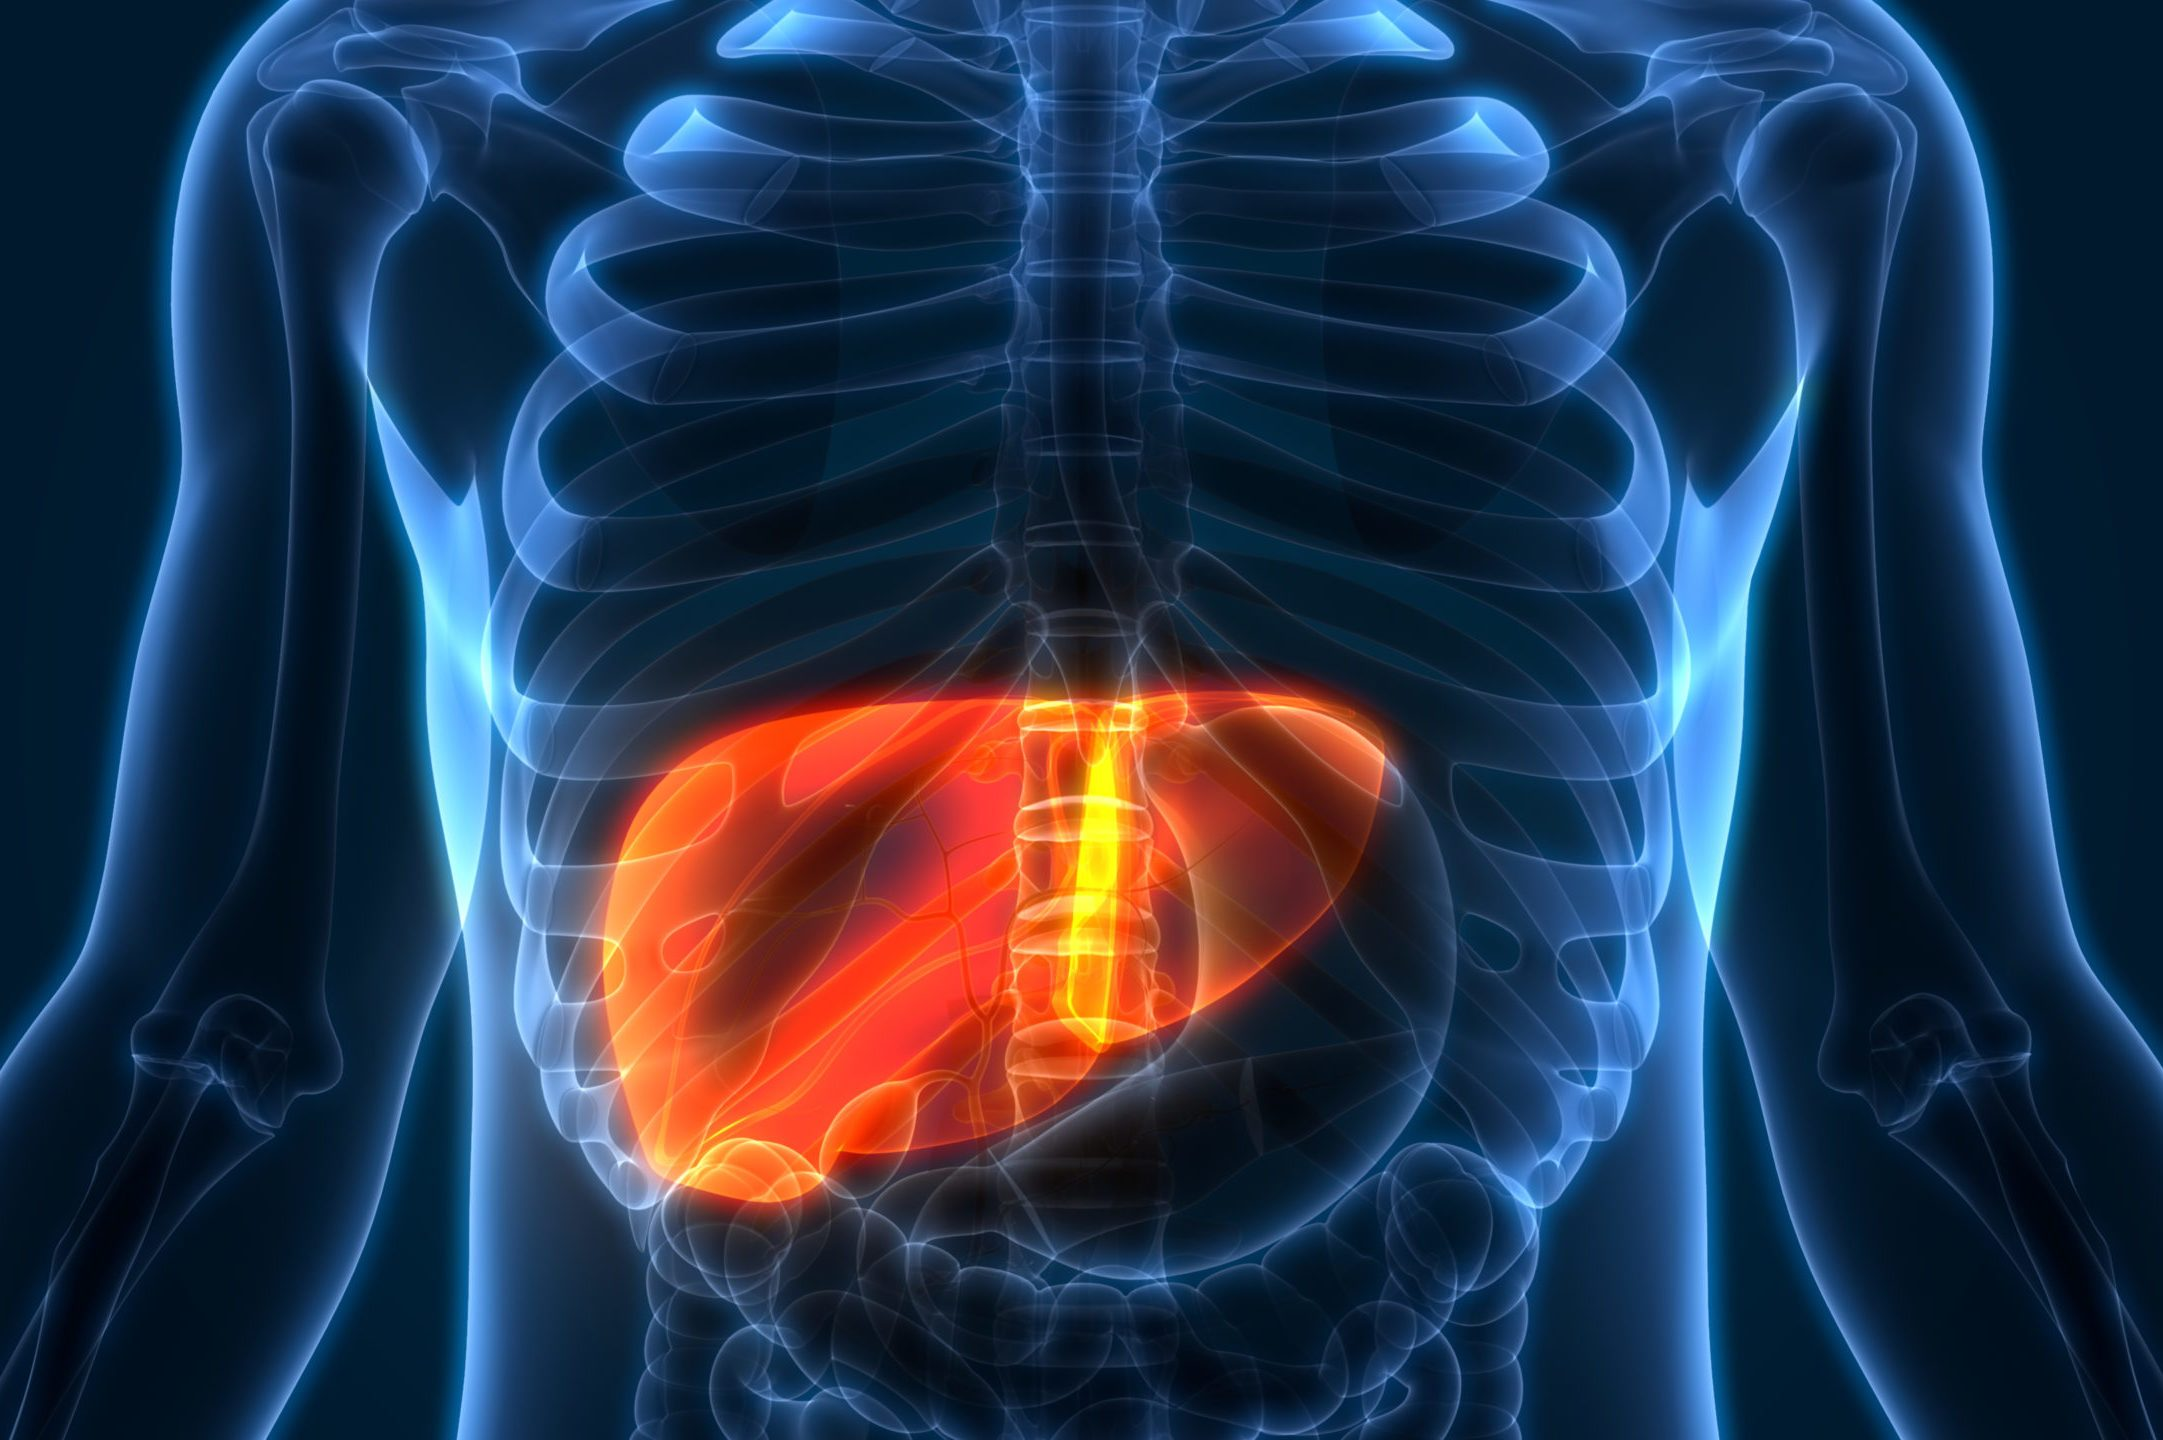 medical illustration of human liver anatomy